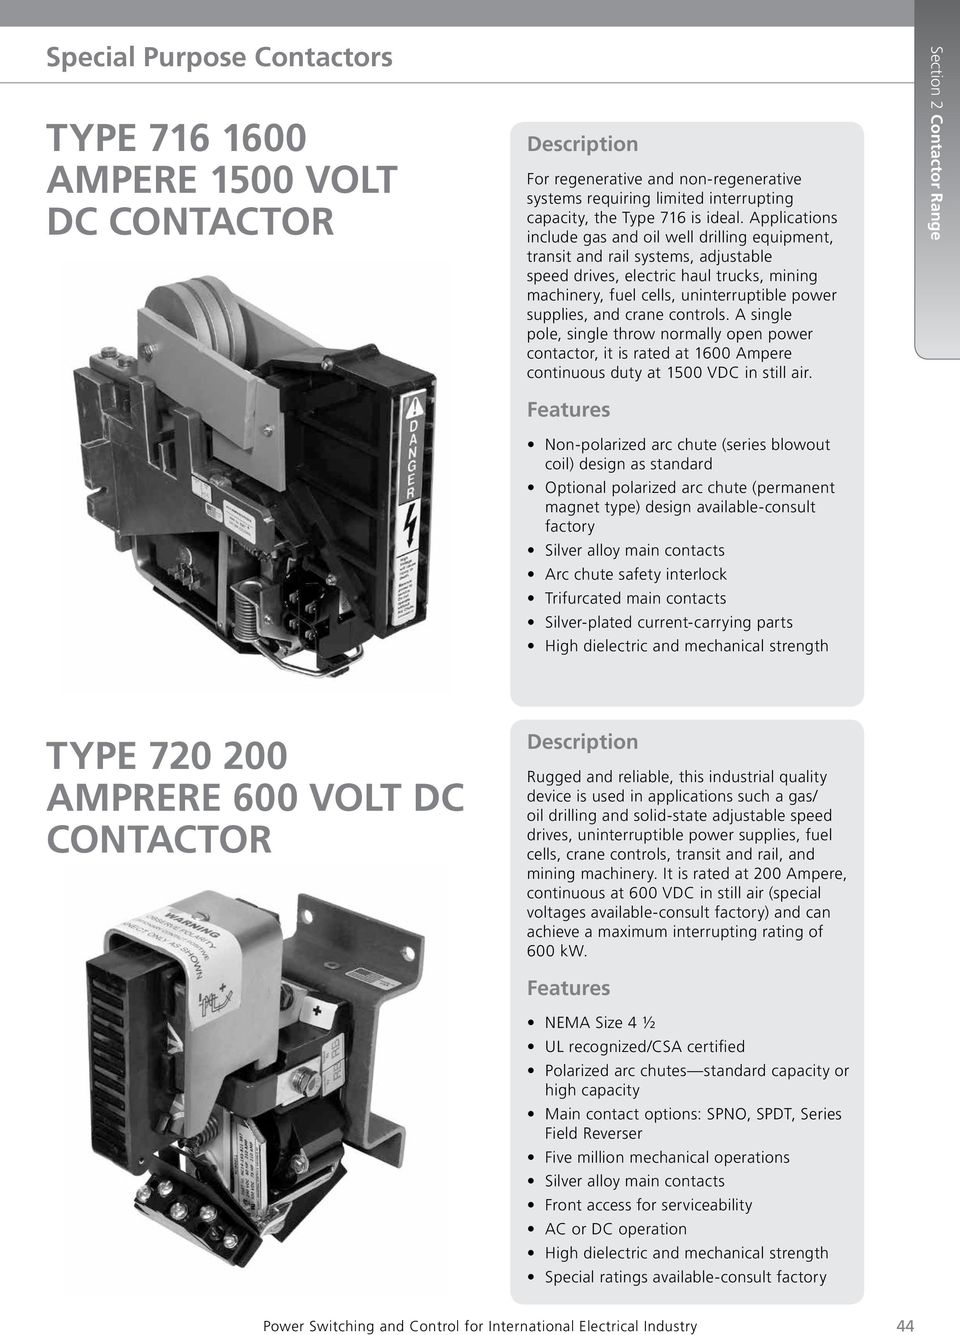 Guide Hi Tech Uca Contactors Hubbell Special Purpose Magnetic Contactor 1 Pole Relay Wiring A Single Throw Normally Open Power It Is